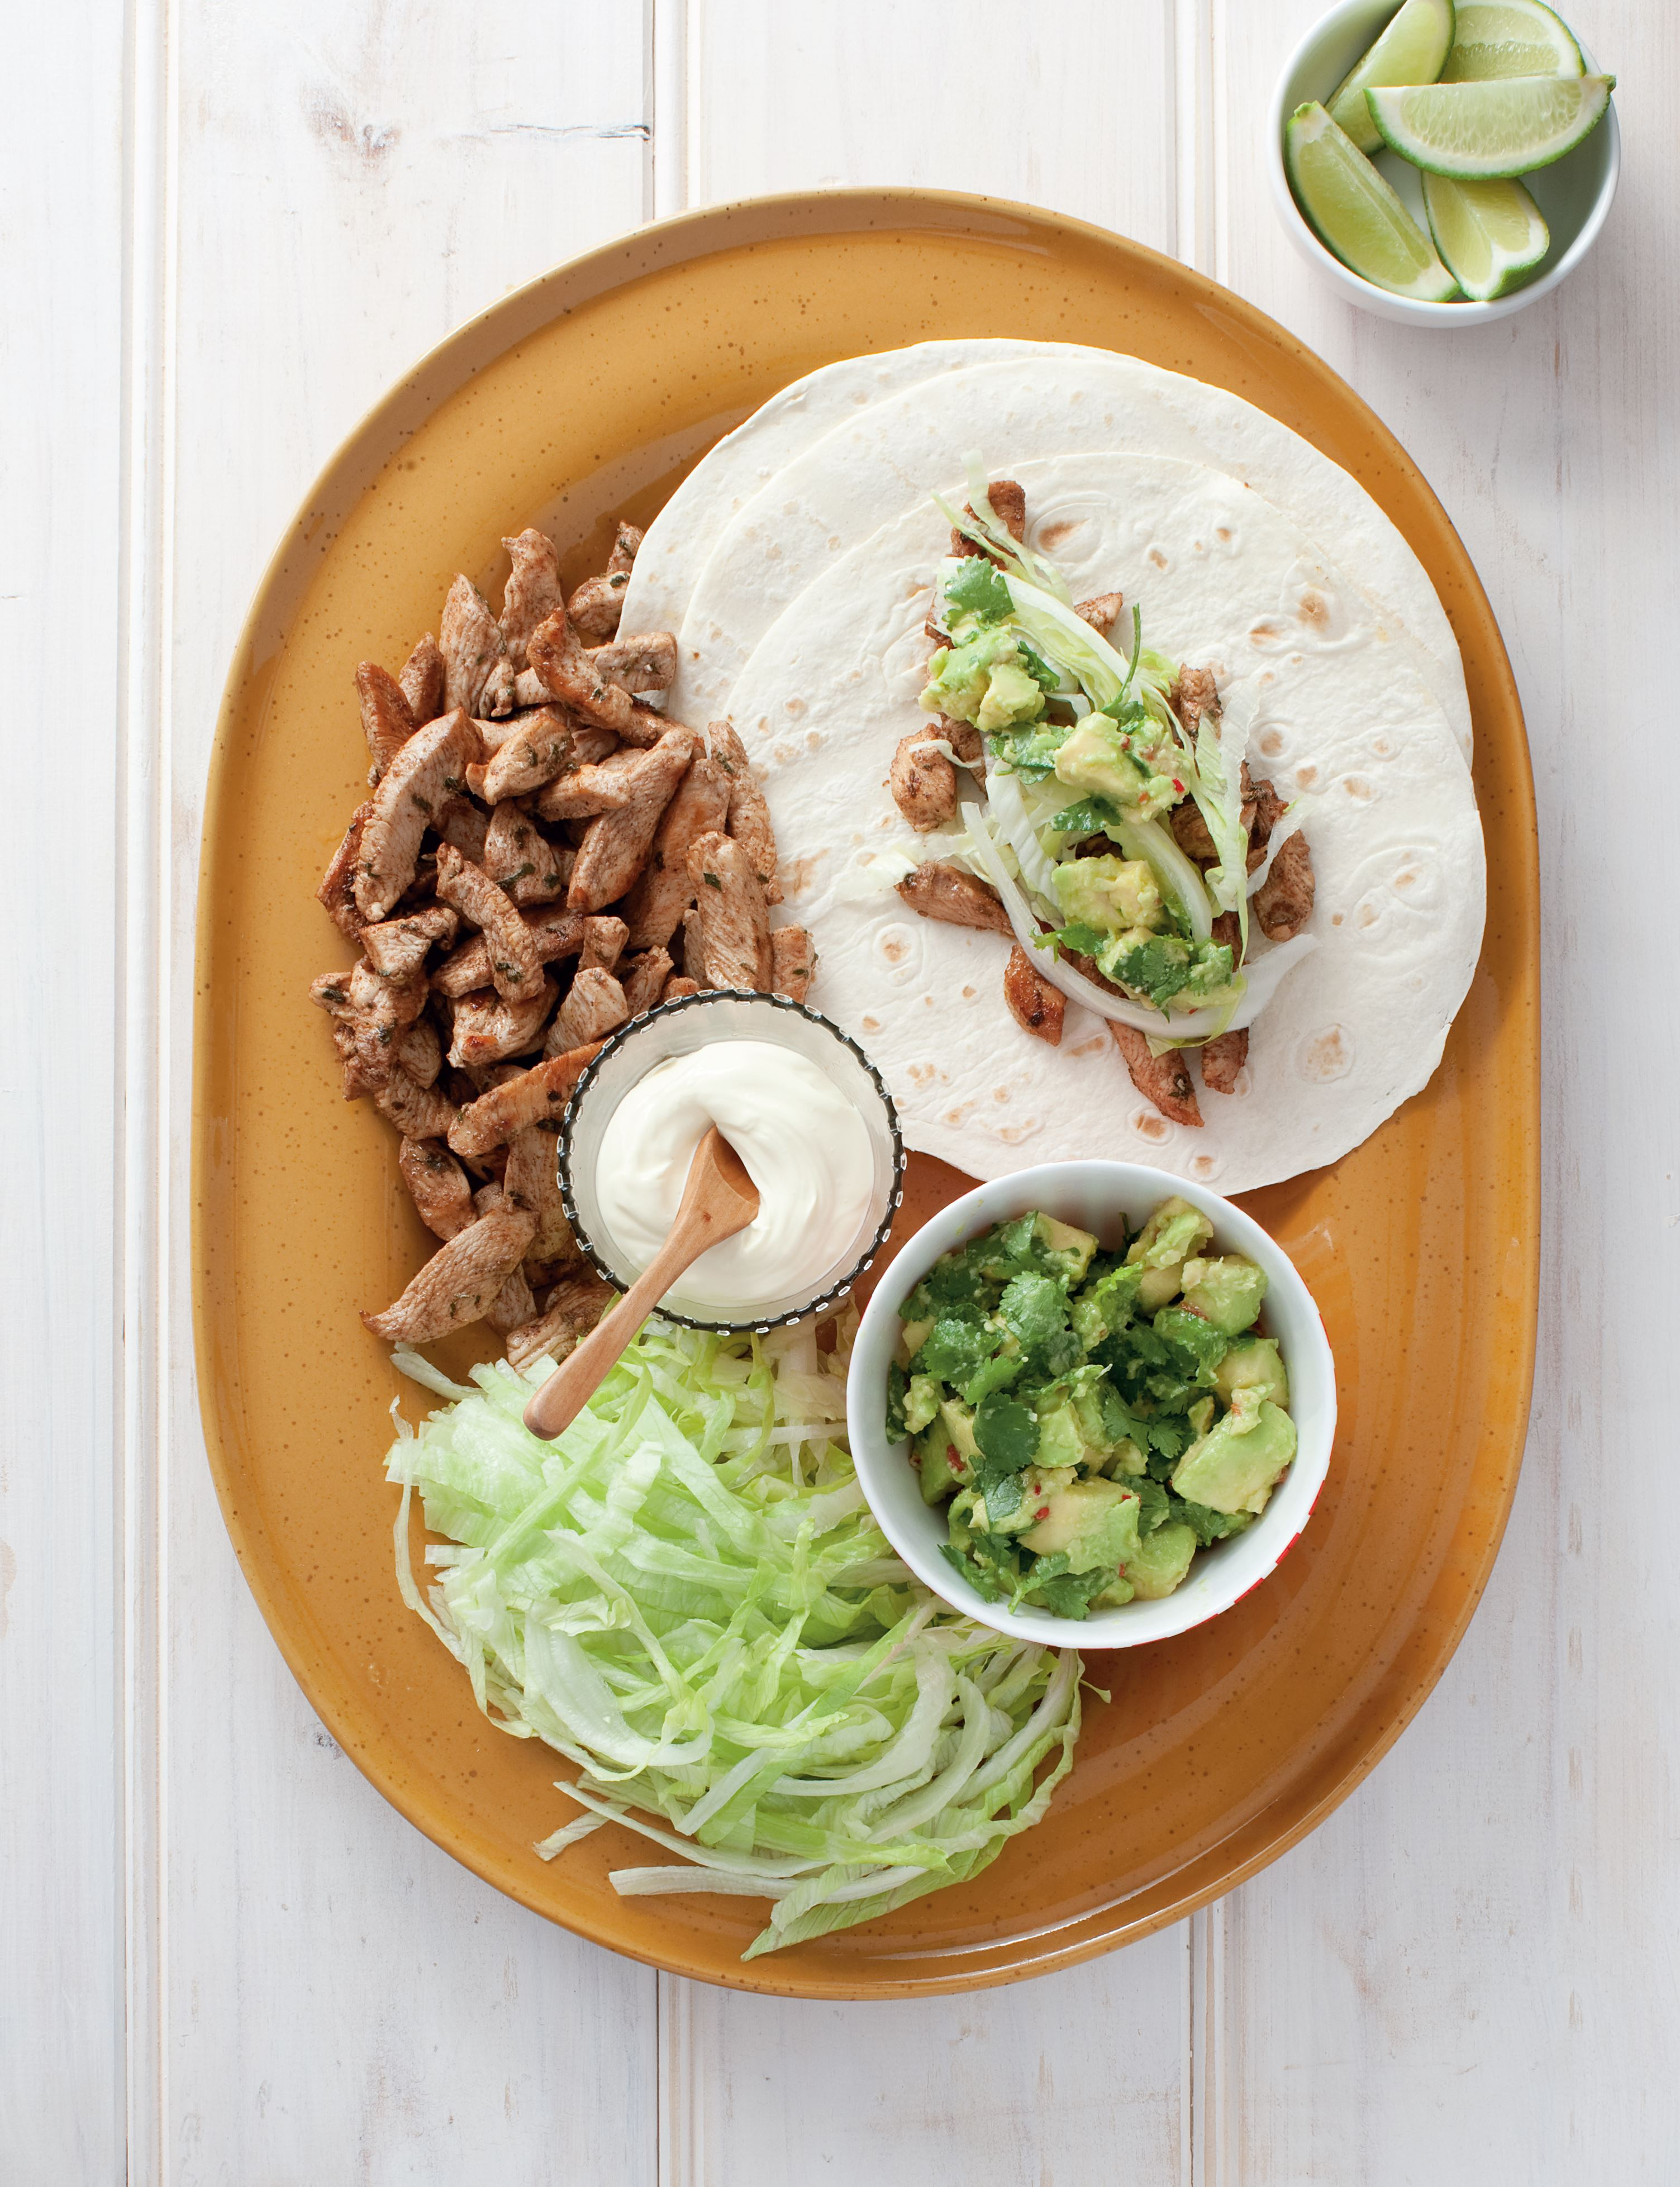 Chicken fajitas with avocado mash